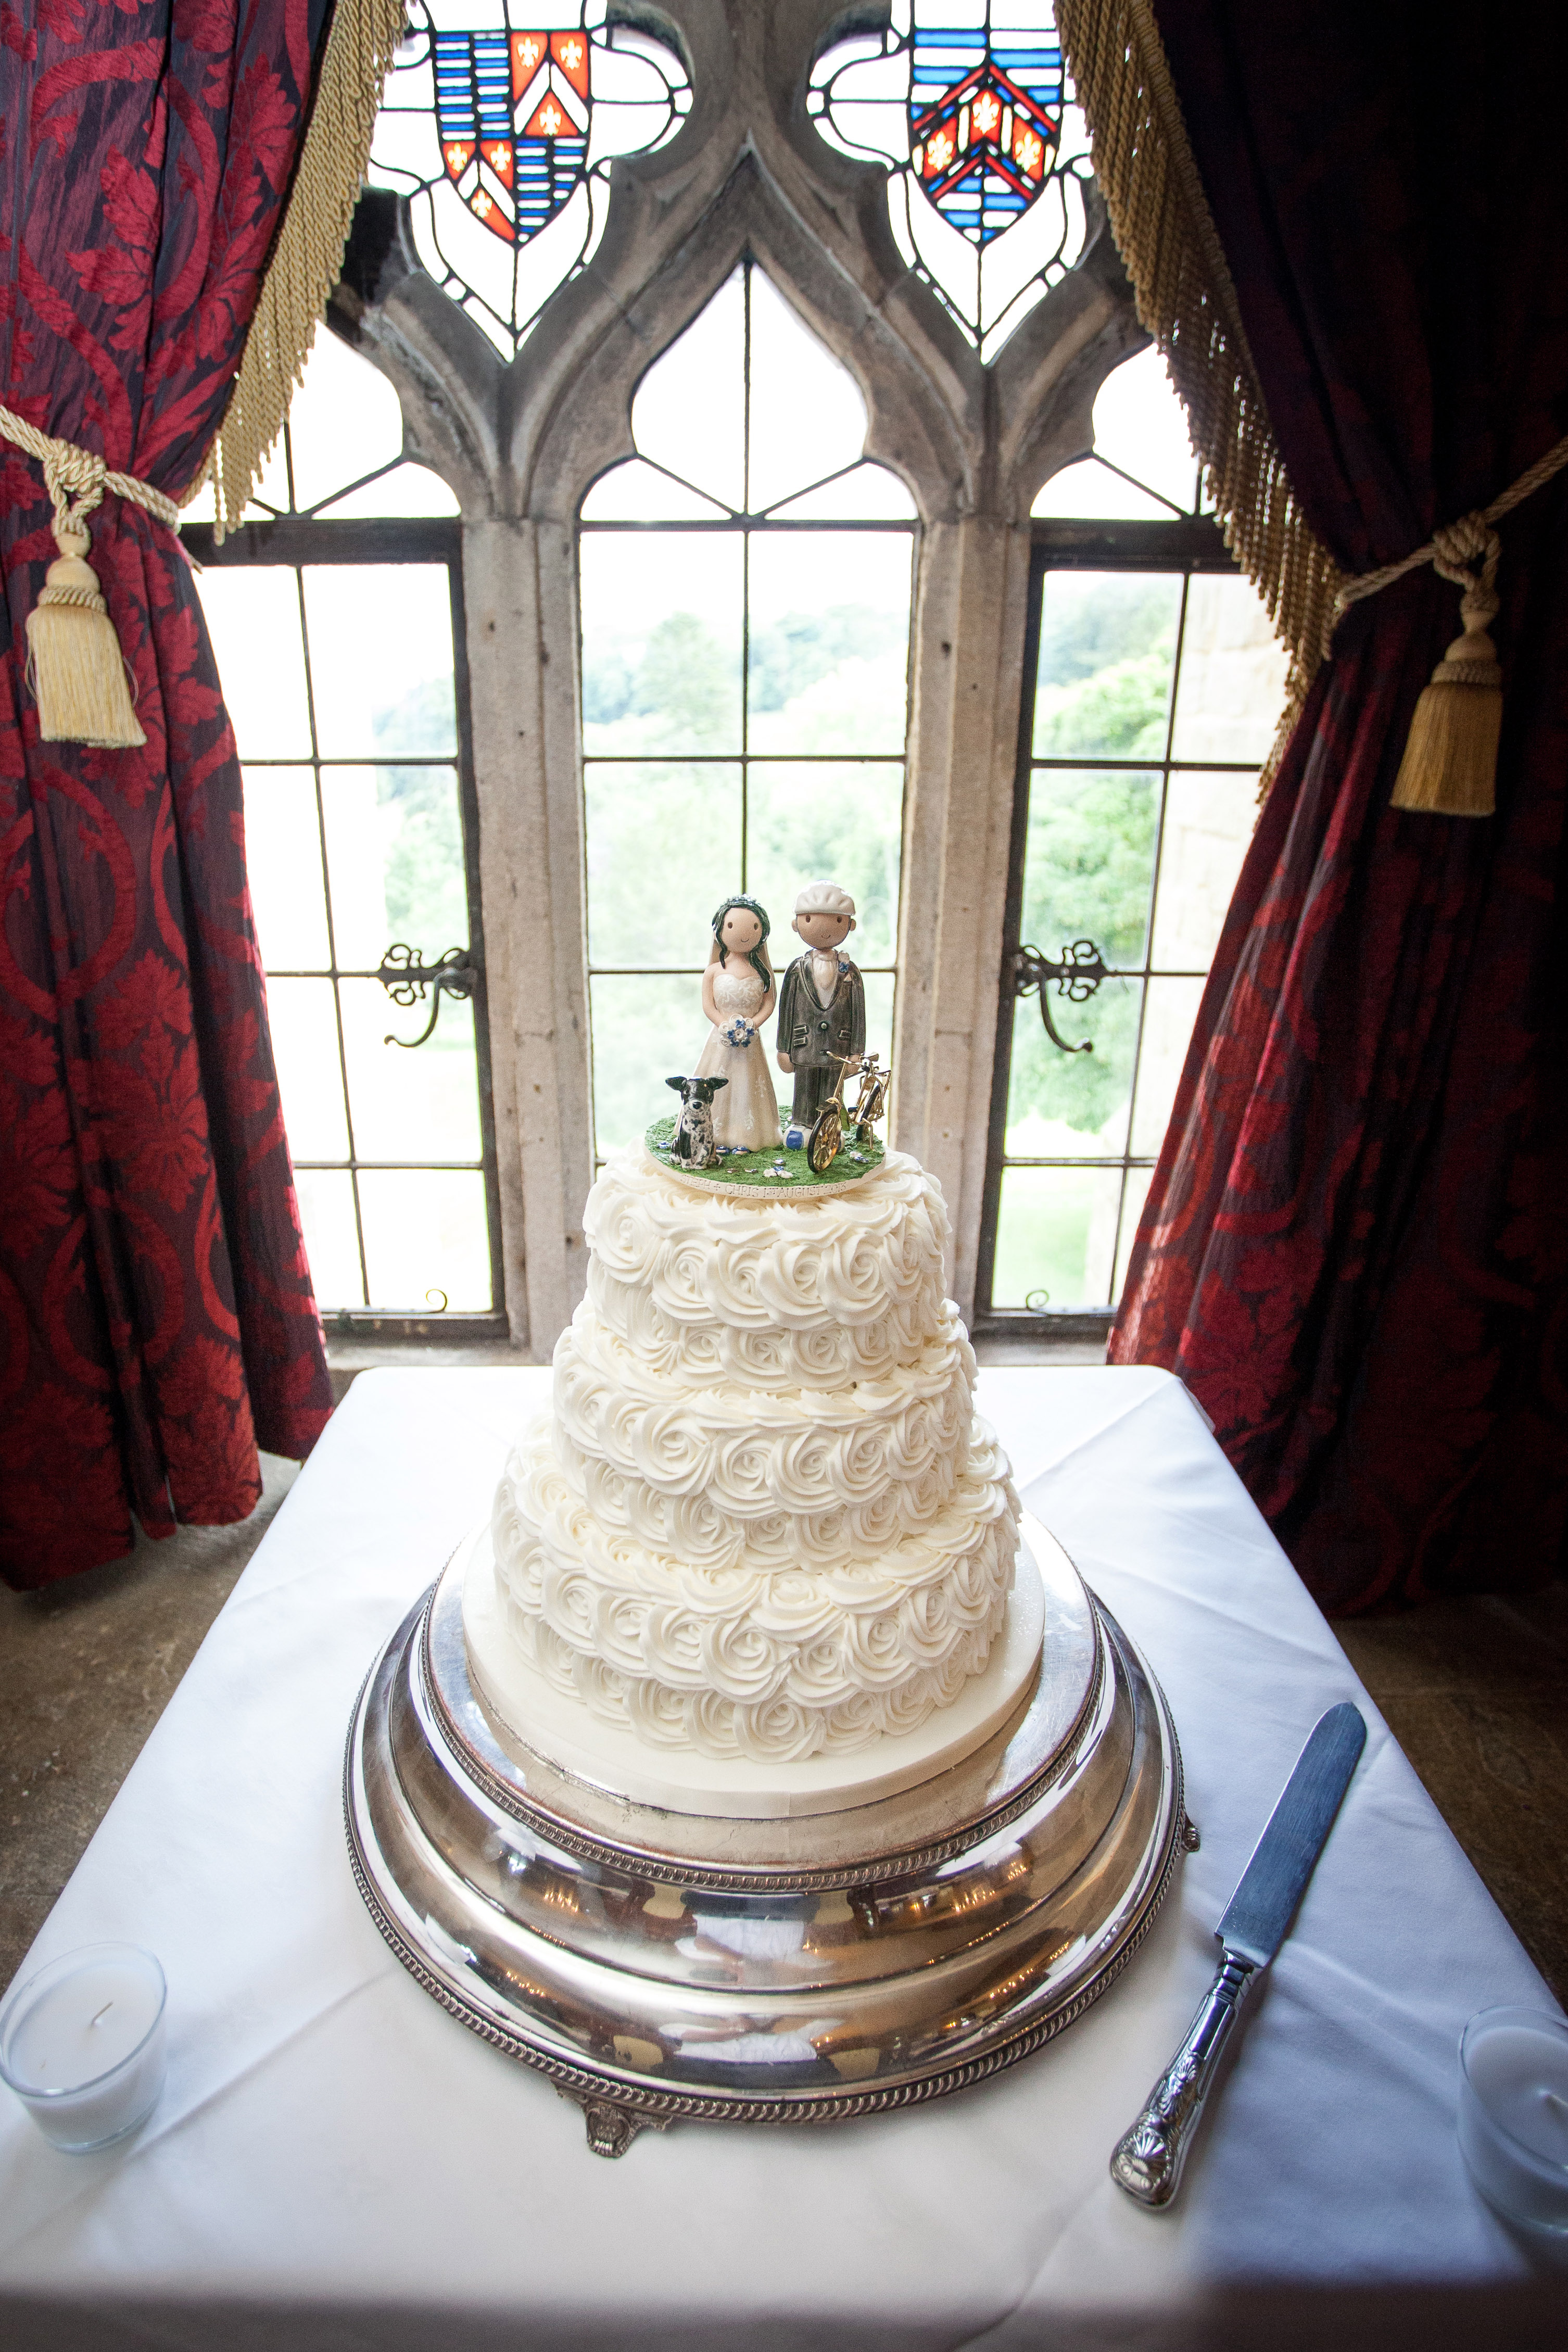 Atop Of The Tier - Weding Cake Toppers Blog